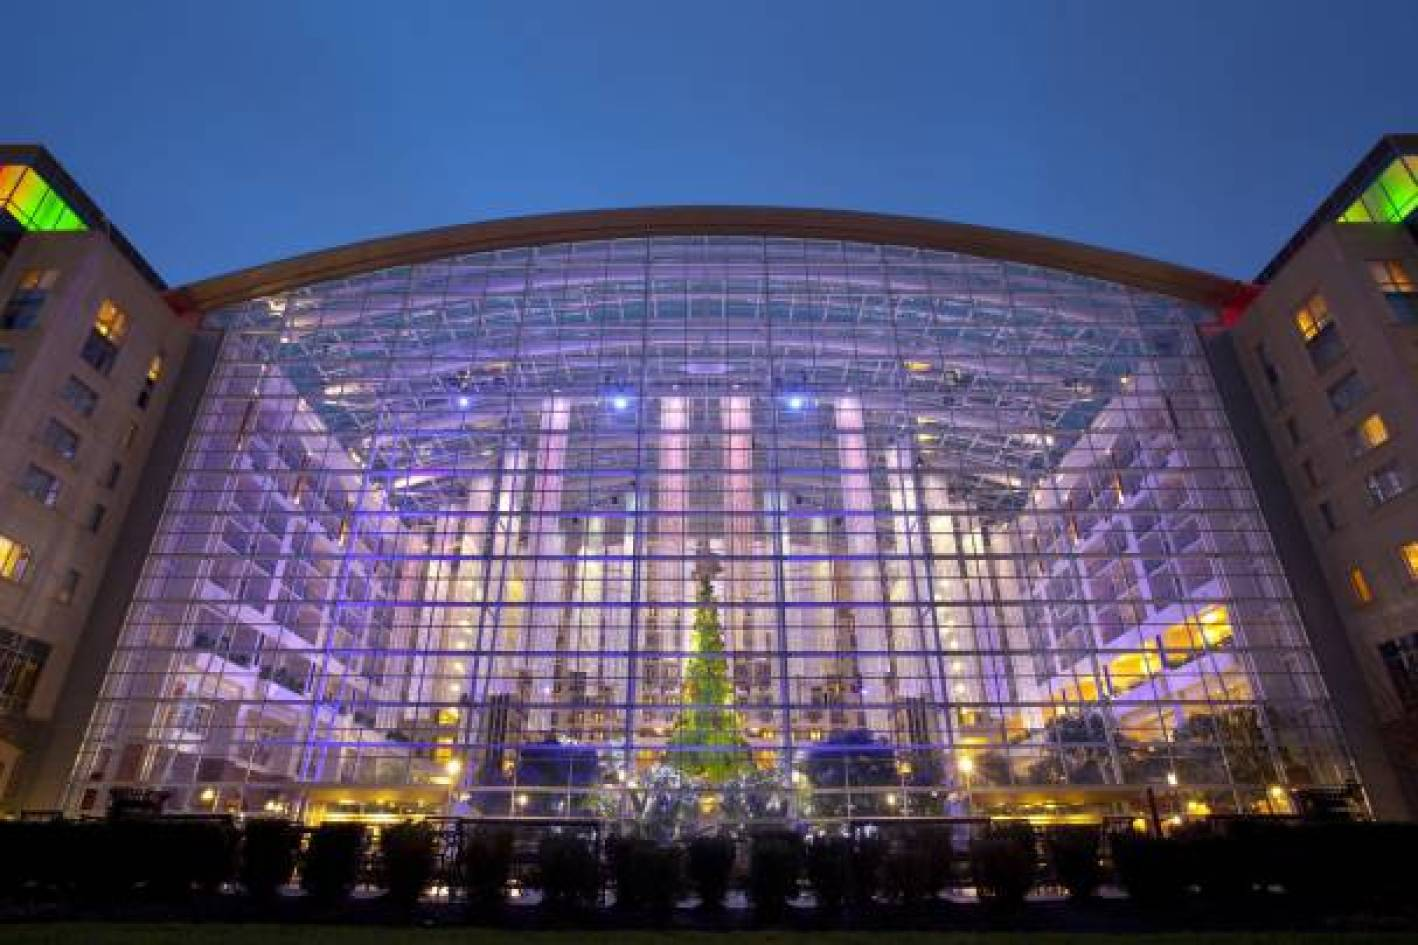 GaylordNational - Christmas Decor - Atrium Window